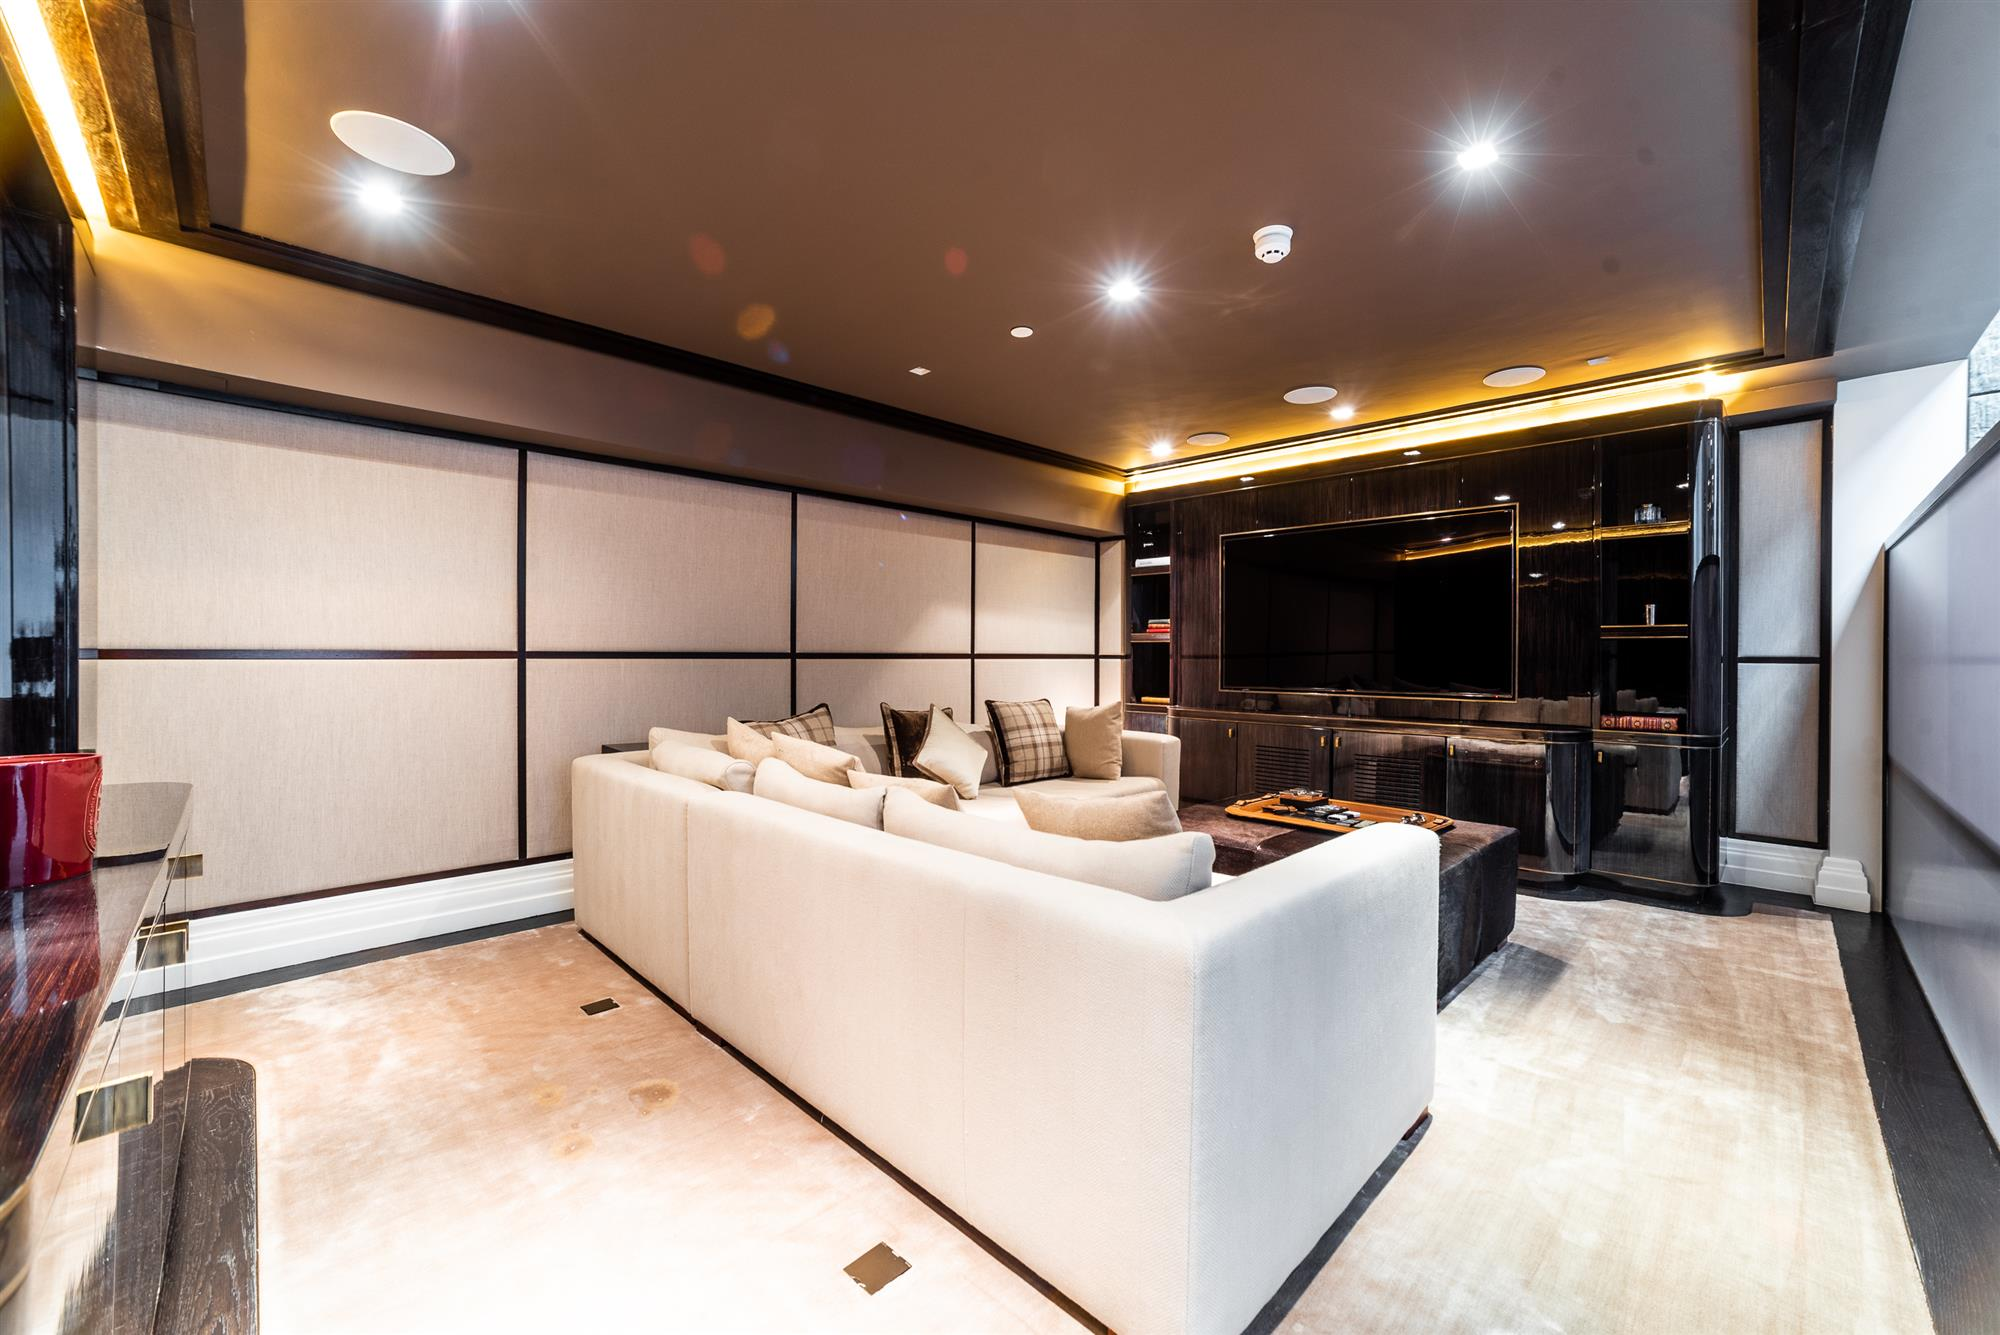 Media Room/Cineam